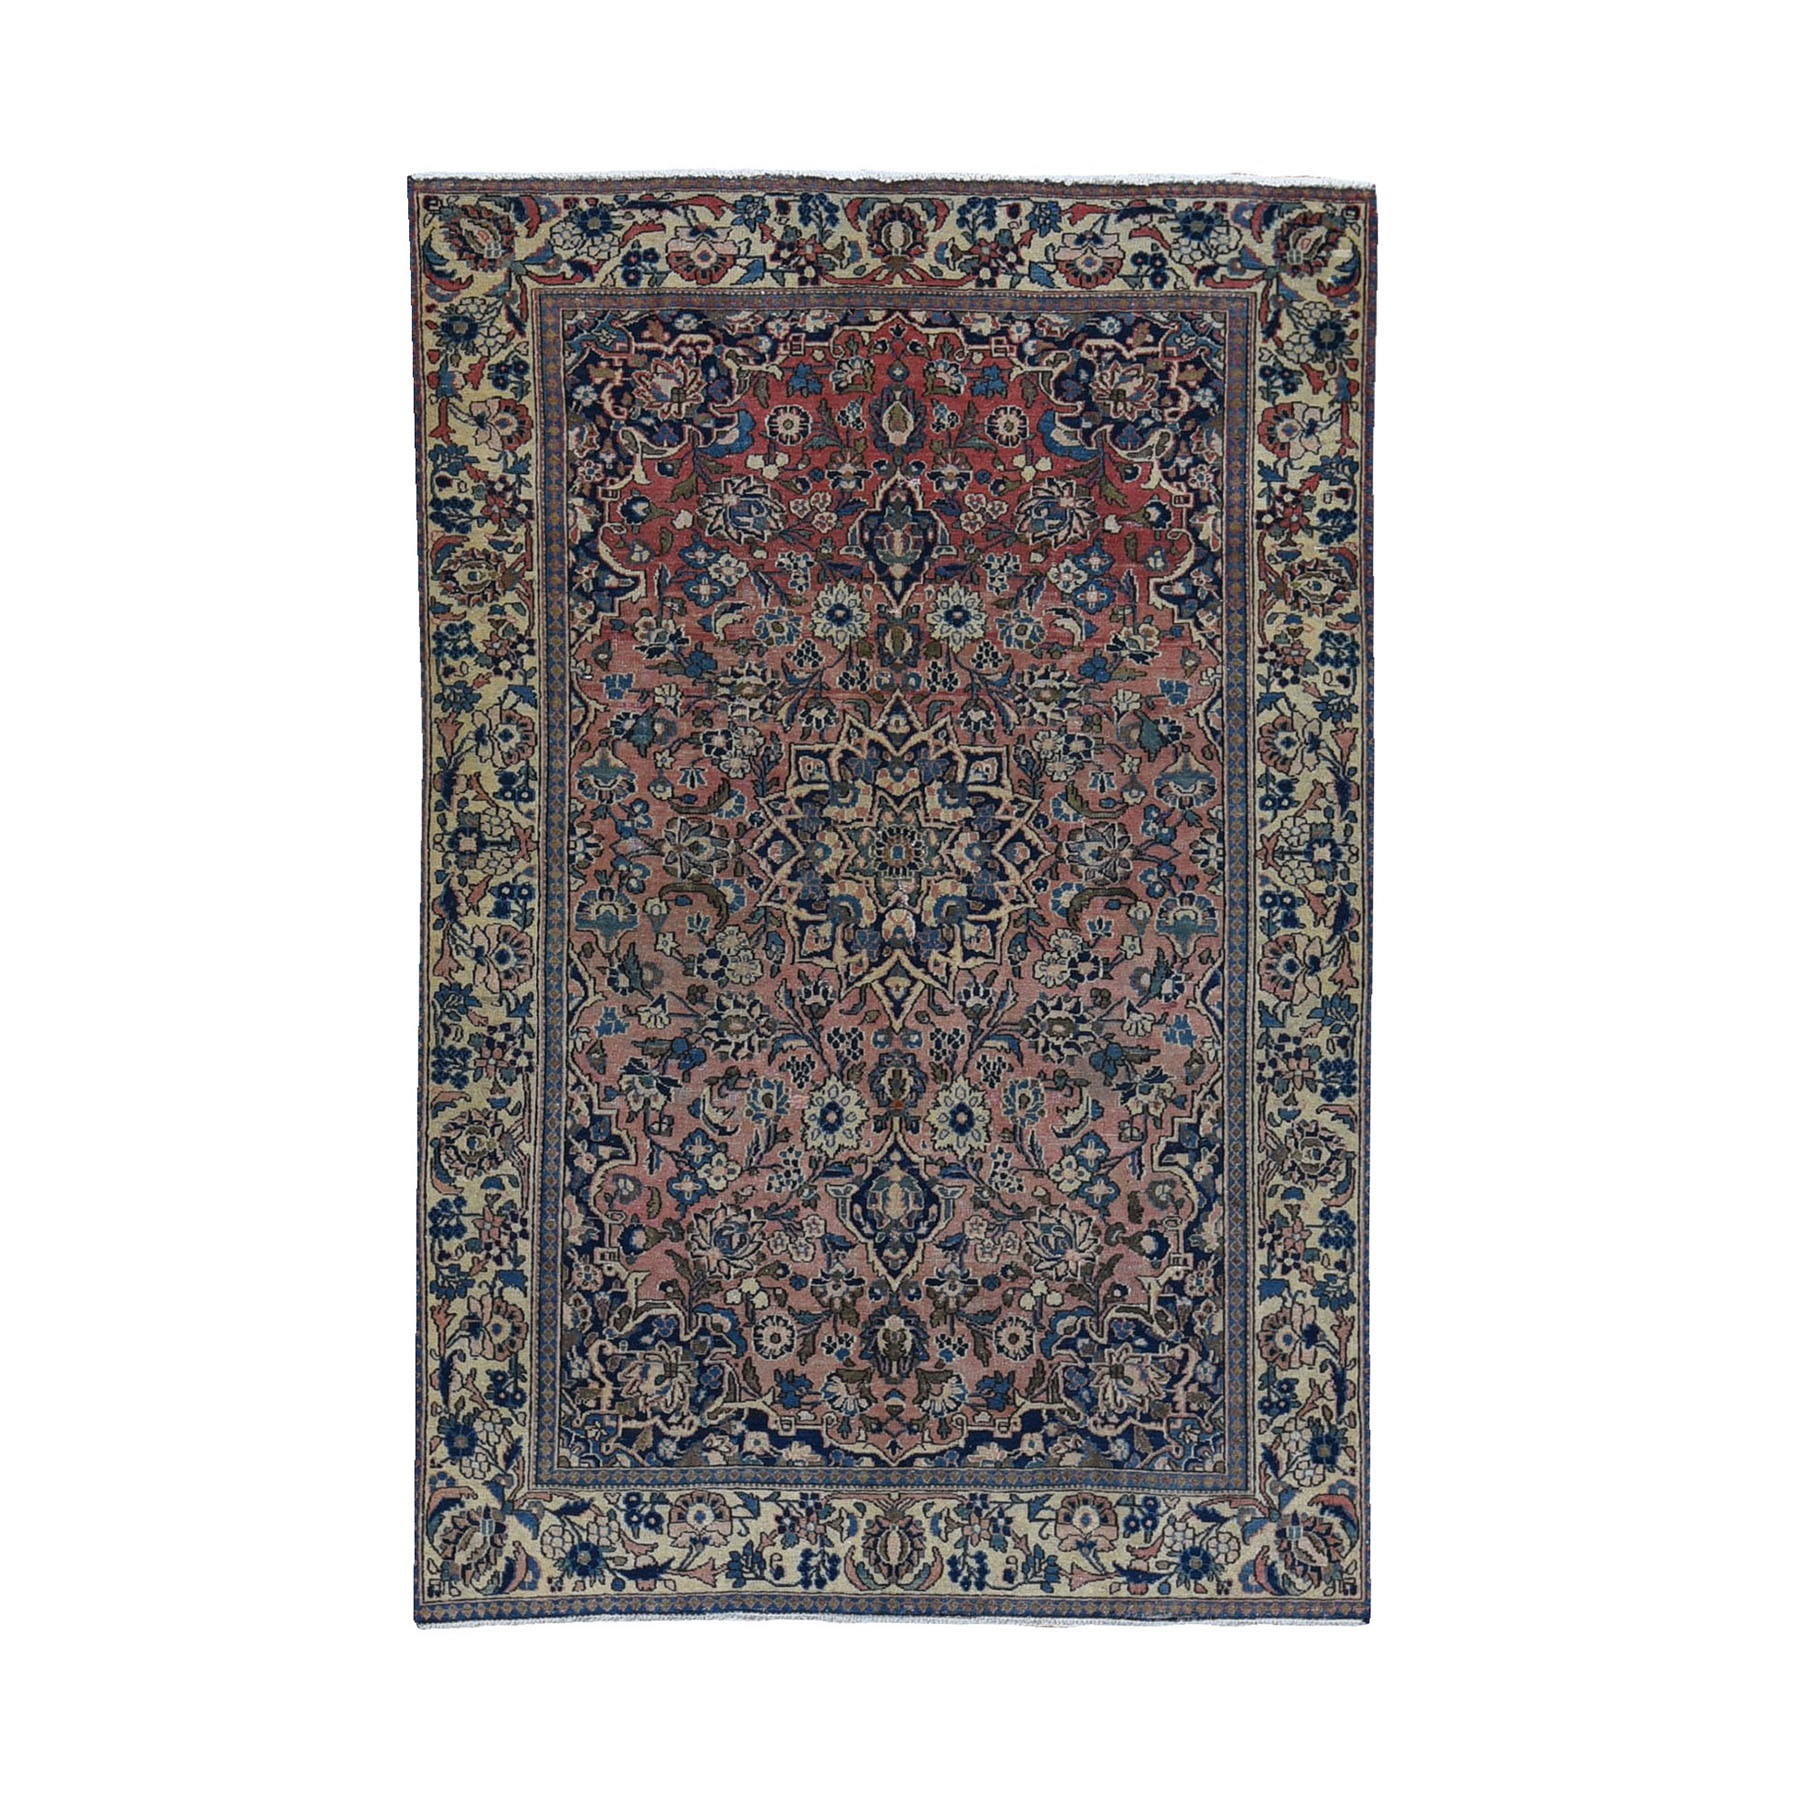 """4'2""""x6'10"""" Worn and Faded Out Vintage Persian Esfahan Organic Wool Hand Knotted Oriental Rug"""